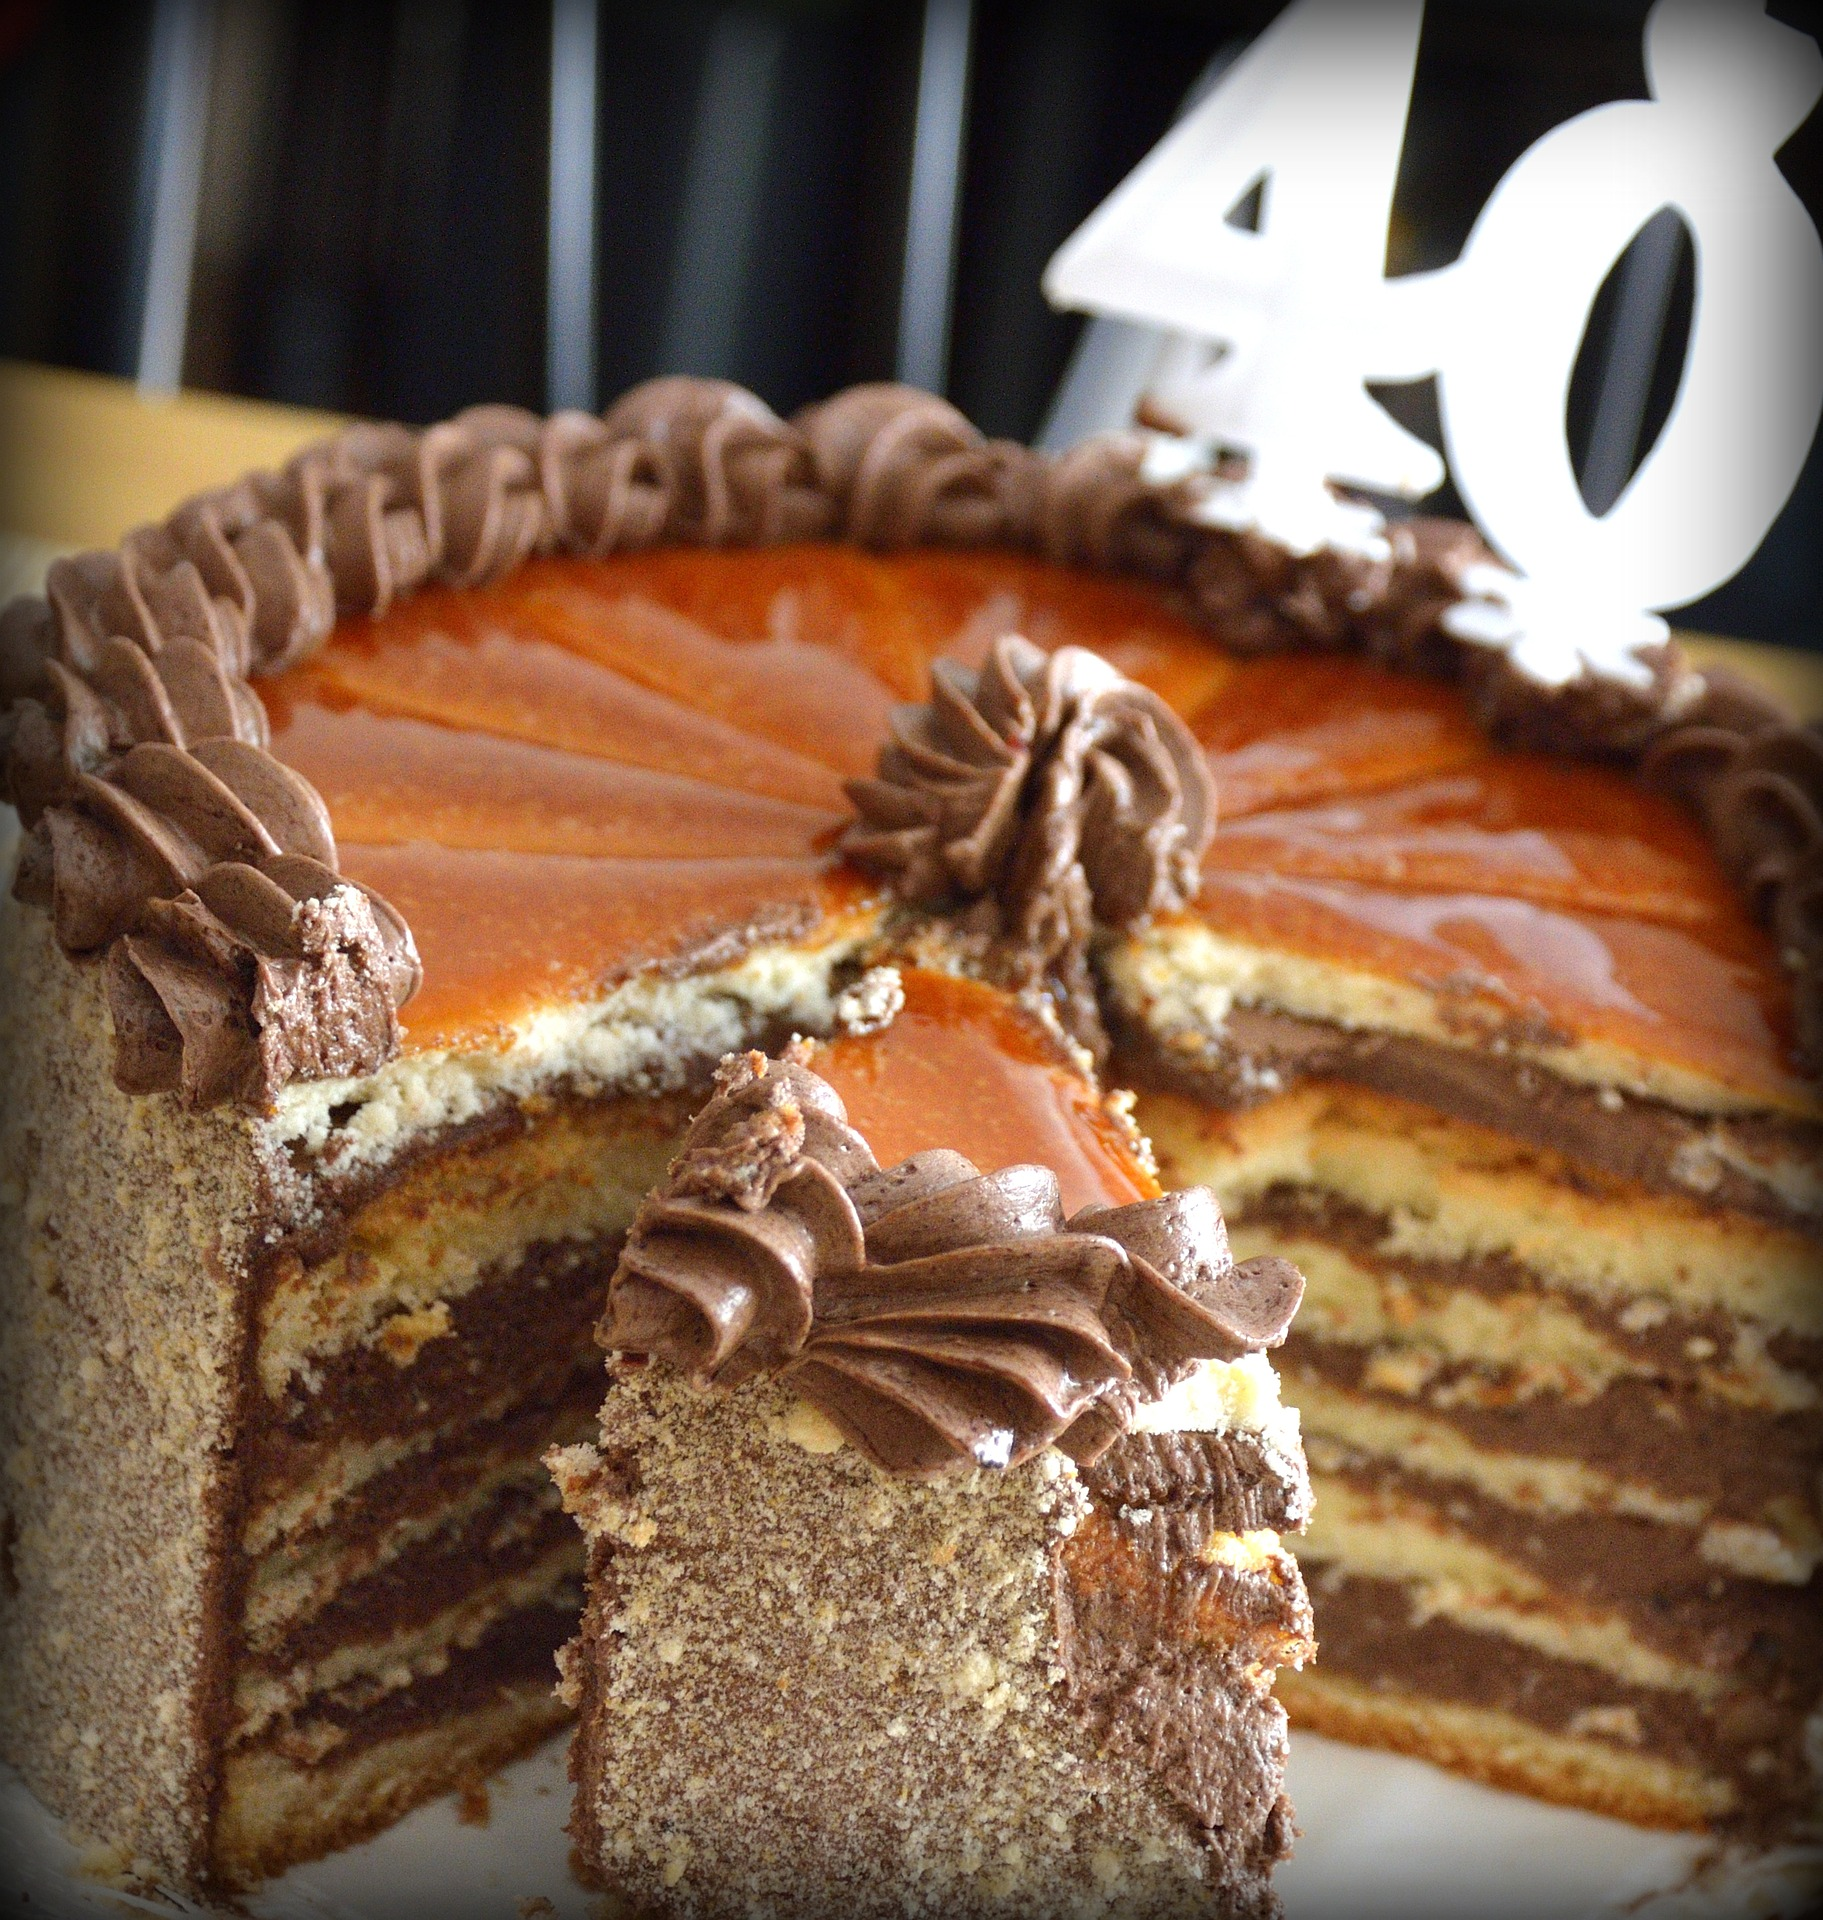 A 40th birthday cake, for a guest post on sex after 40 by Evelyn Archer